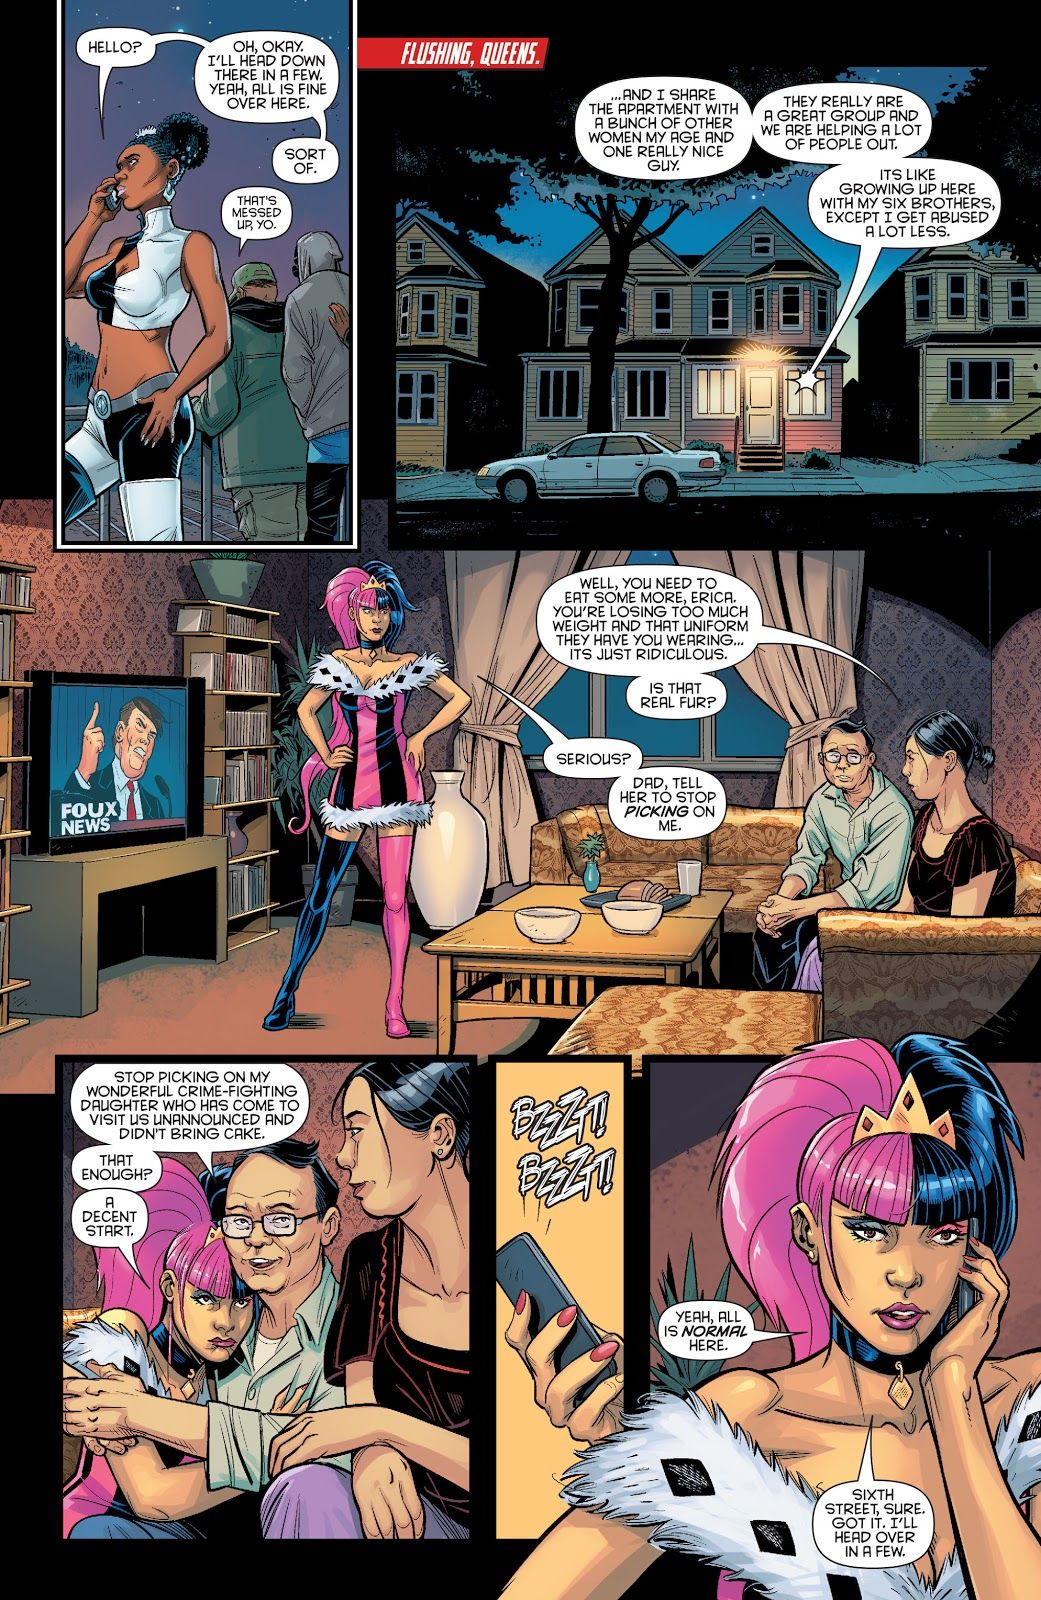 harley quinn and her gang of harleys issue 2 read harley quinn